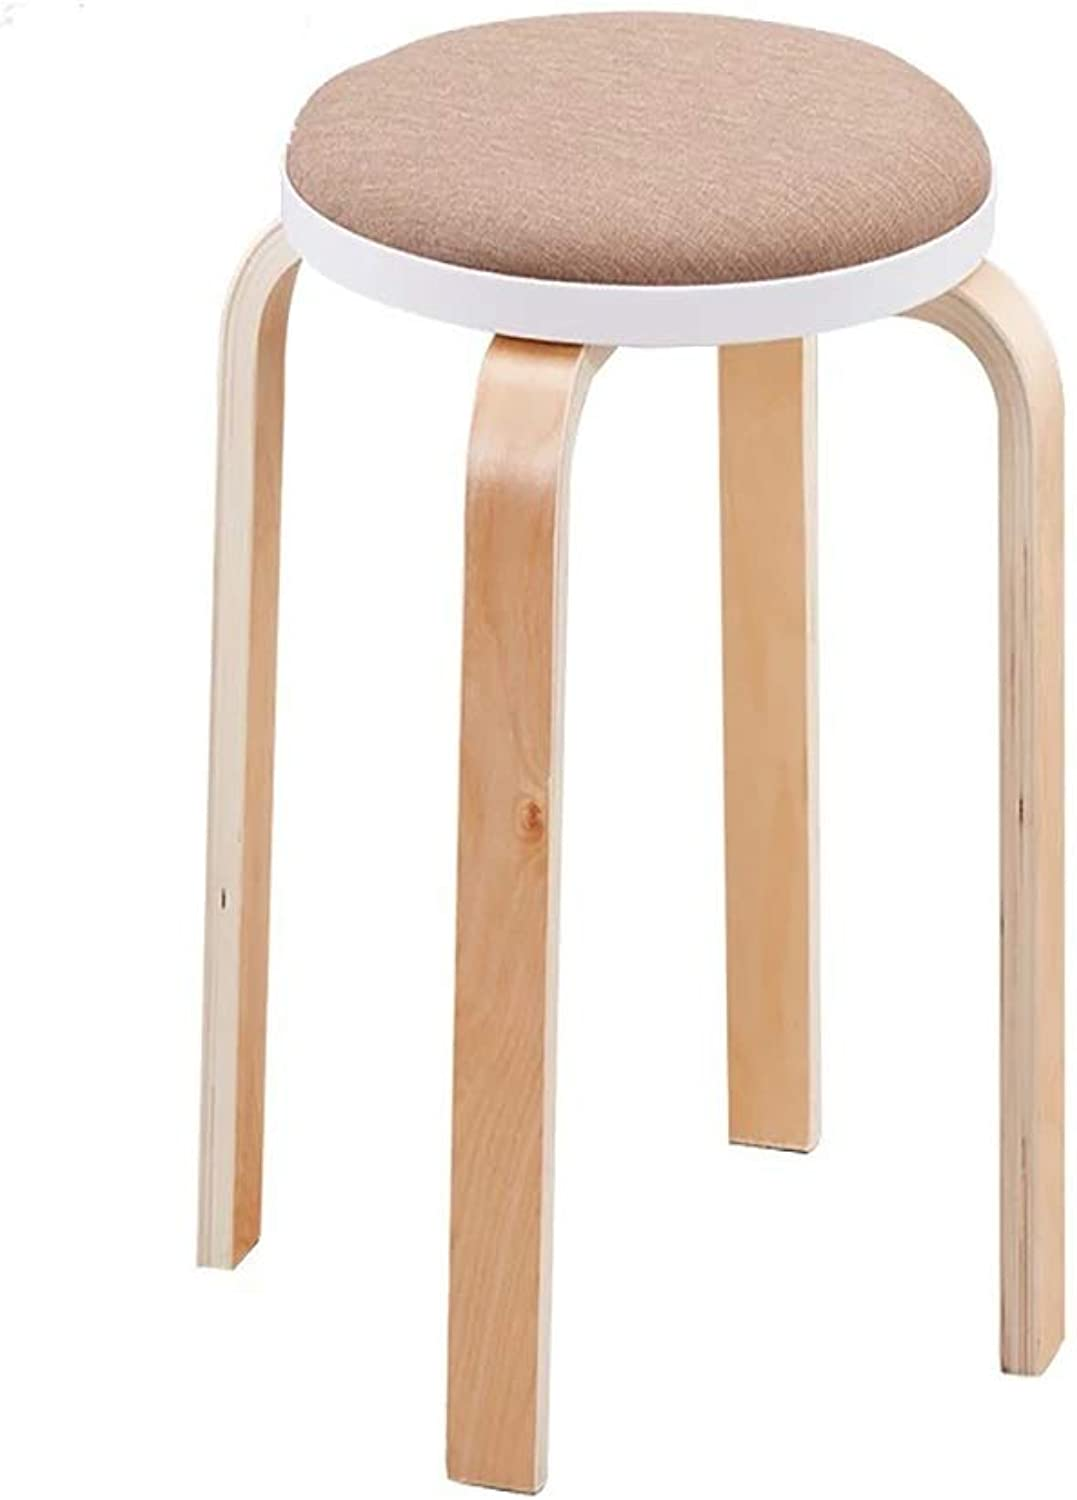 Barstools,Bar Stools Stool Home Thickening Fashion Creative Plastic Small Round Bench Adult Dining Stool High Solid Wood Round Stool Khaki color